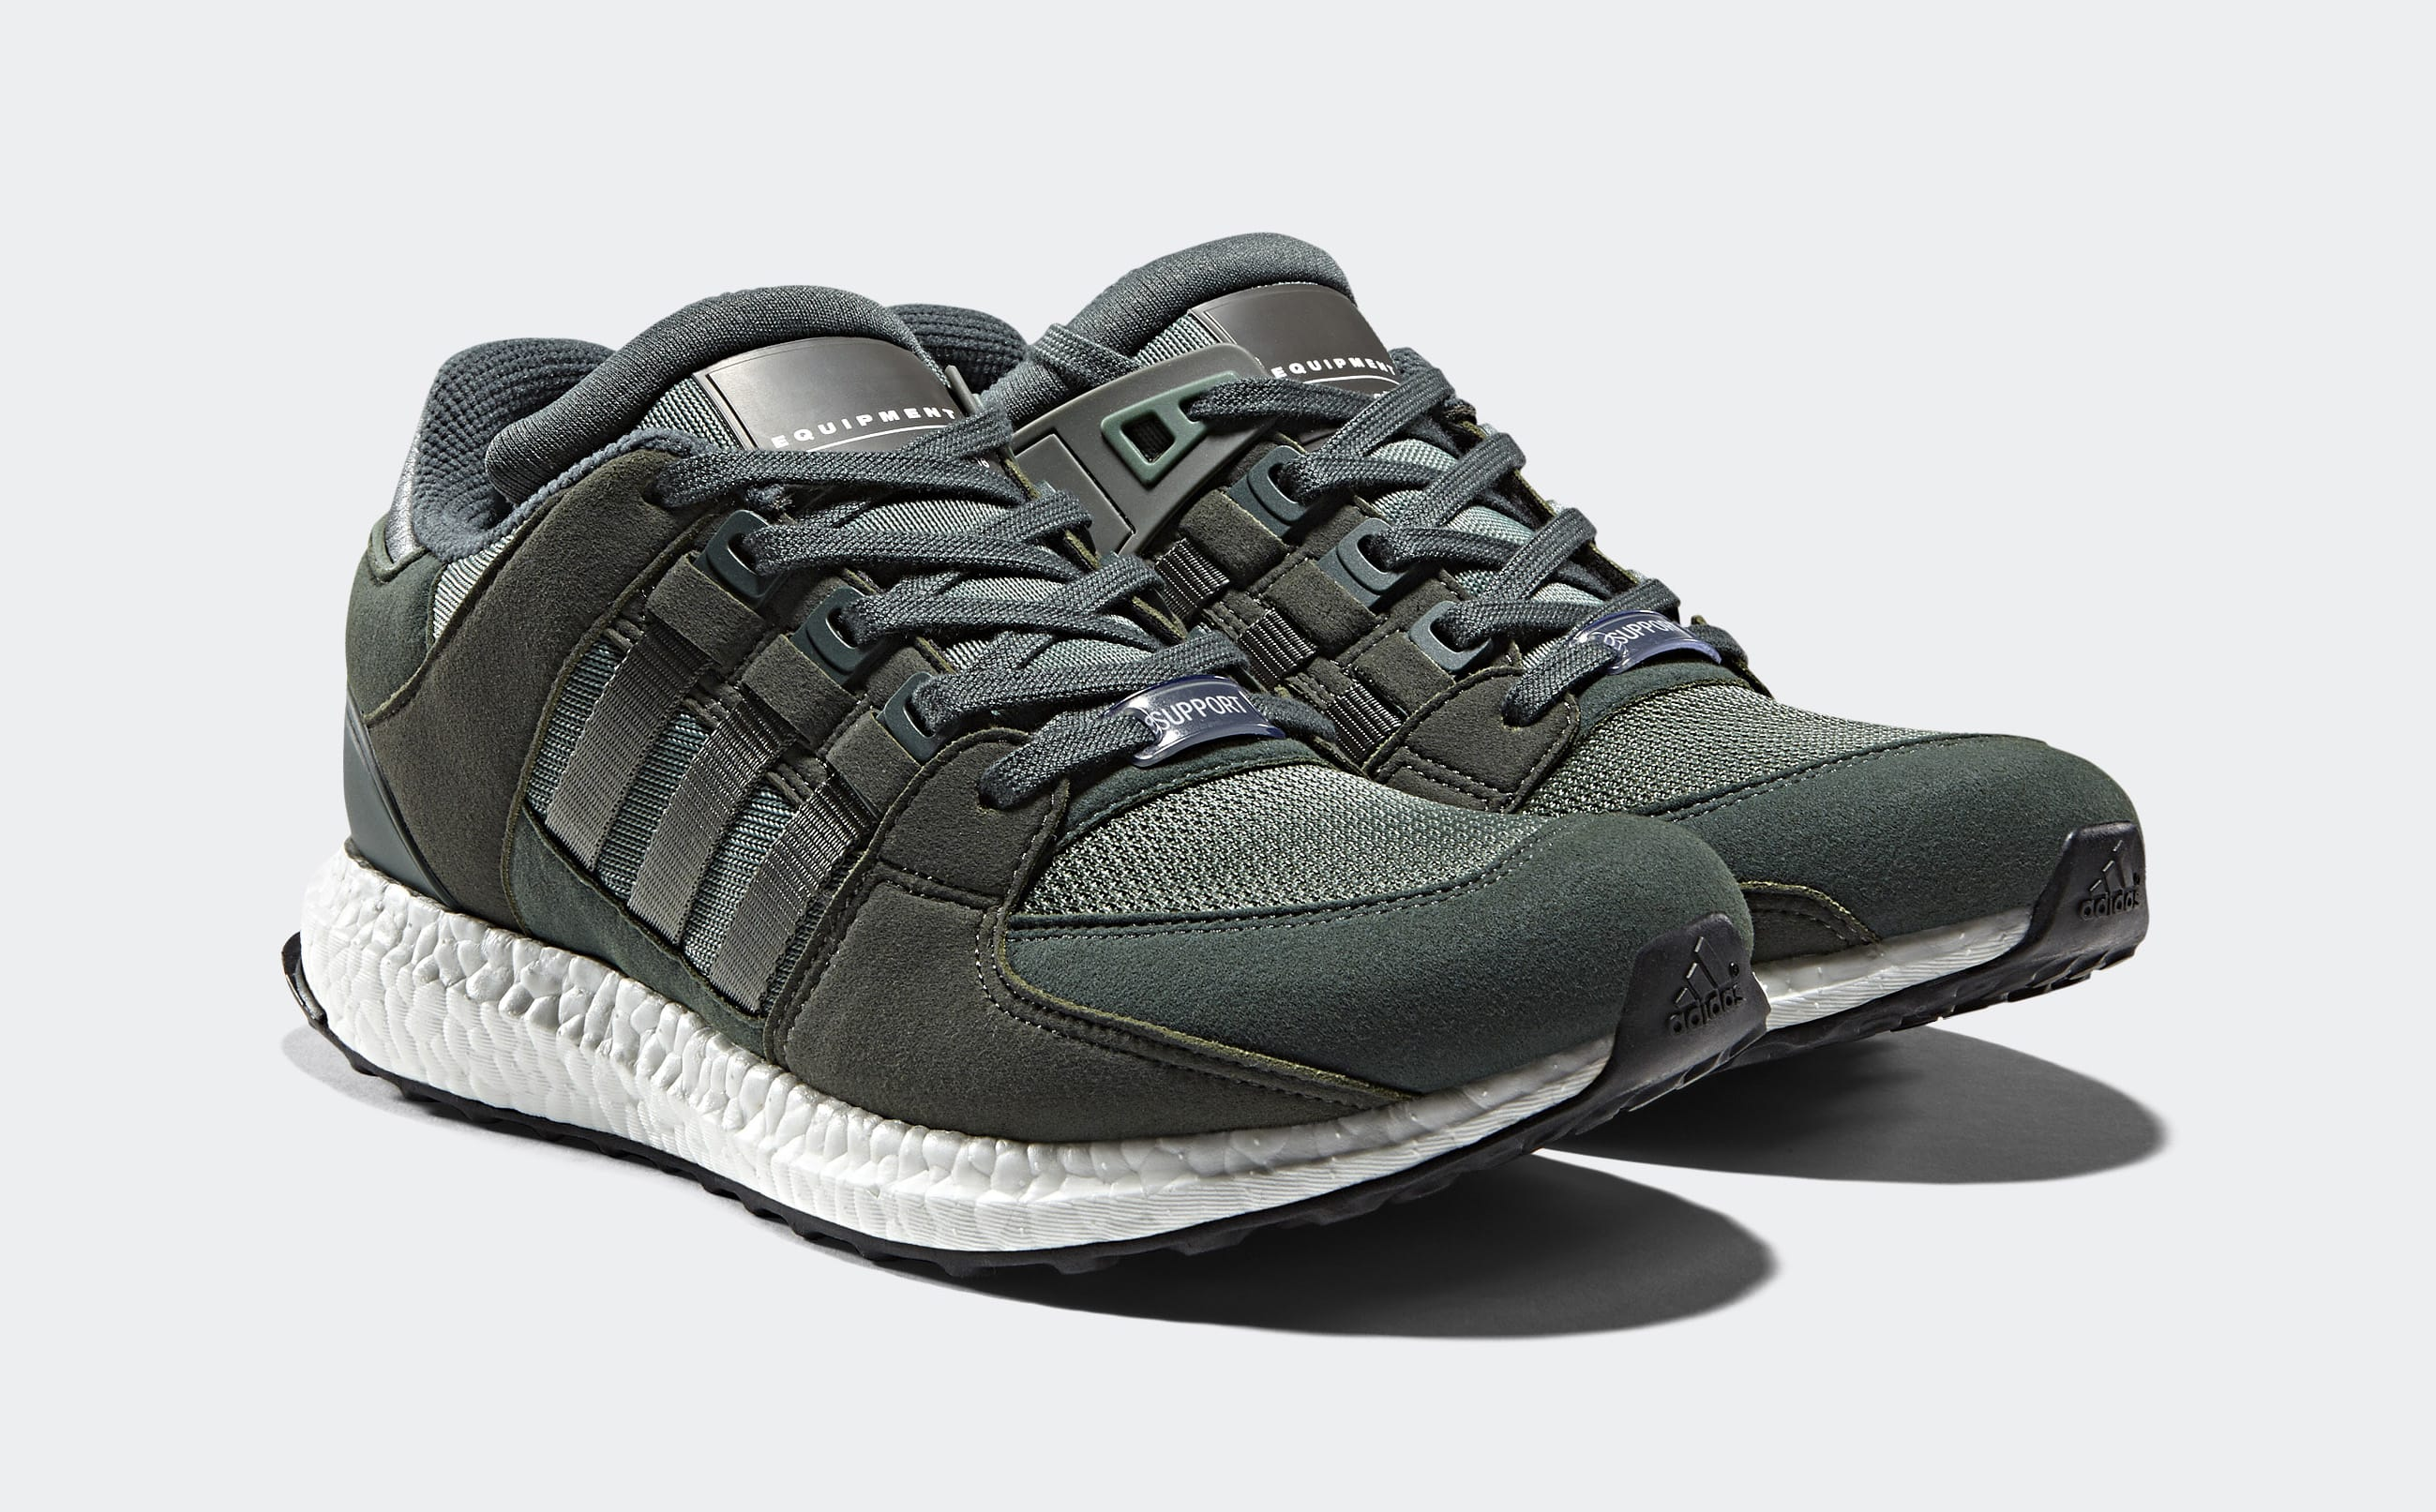 adidas eqt support ultra sole collector. Black Bedroom Furniture Sets. Home Design Ideas